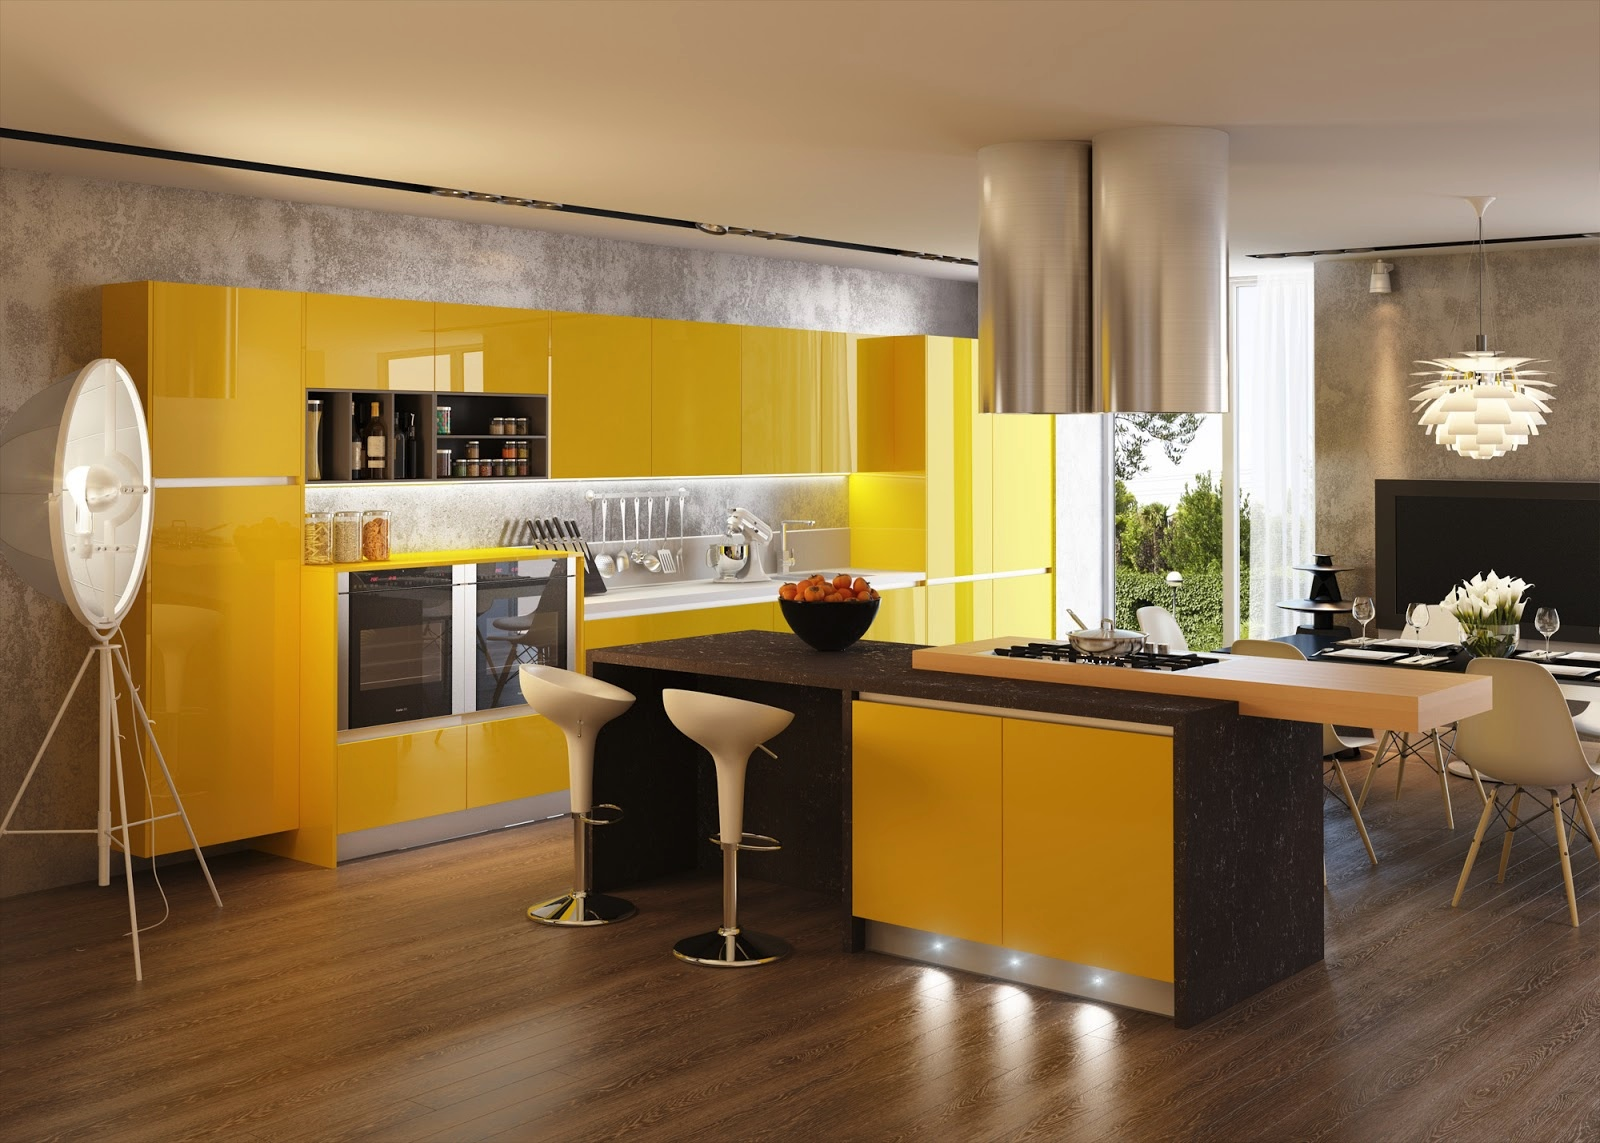 Kitchens with contrast for Remodelacion de cocinas pequenas